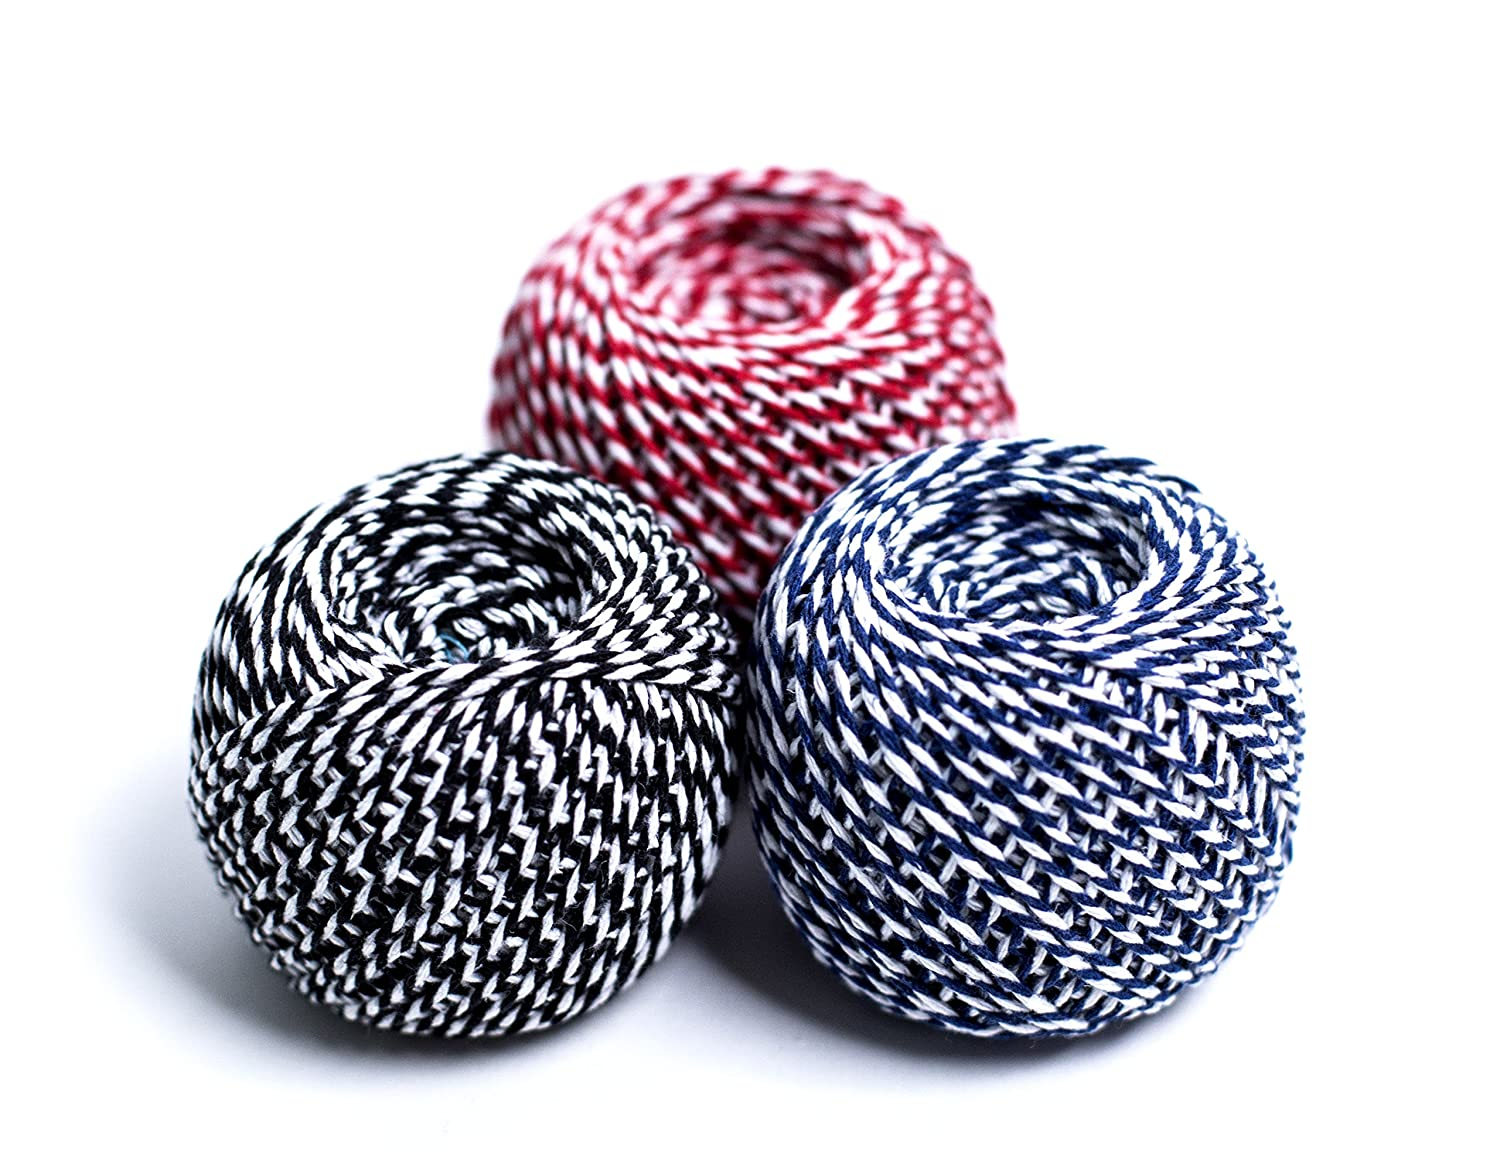 3 Roll 70M (Total 210M) Cotton Rope Ribbon Twine Wrap Gift Bakers String Cord Ball for Floristry, Gifts, Greeting Card, DIY Arts& Crafts, Garden and Home Decoration 2MM in Diameter(1 Red+White, 1 Blue+White,1 Black+White) YIRANFANTASY